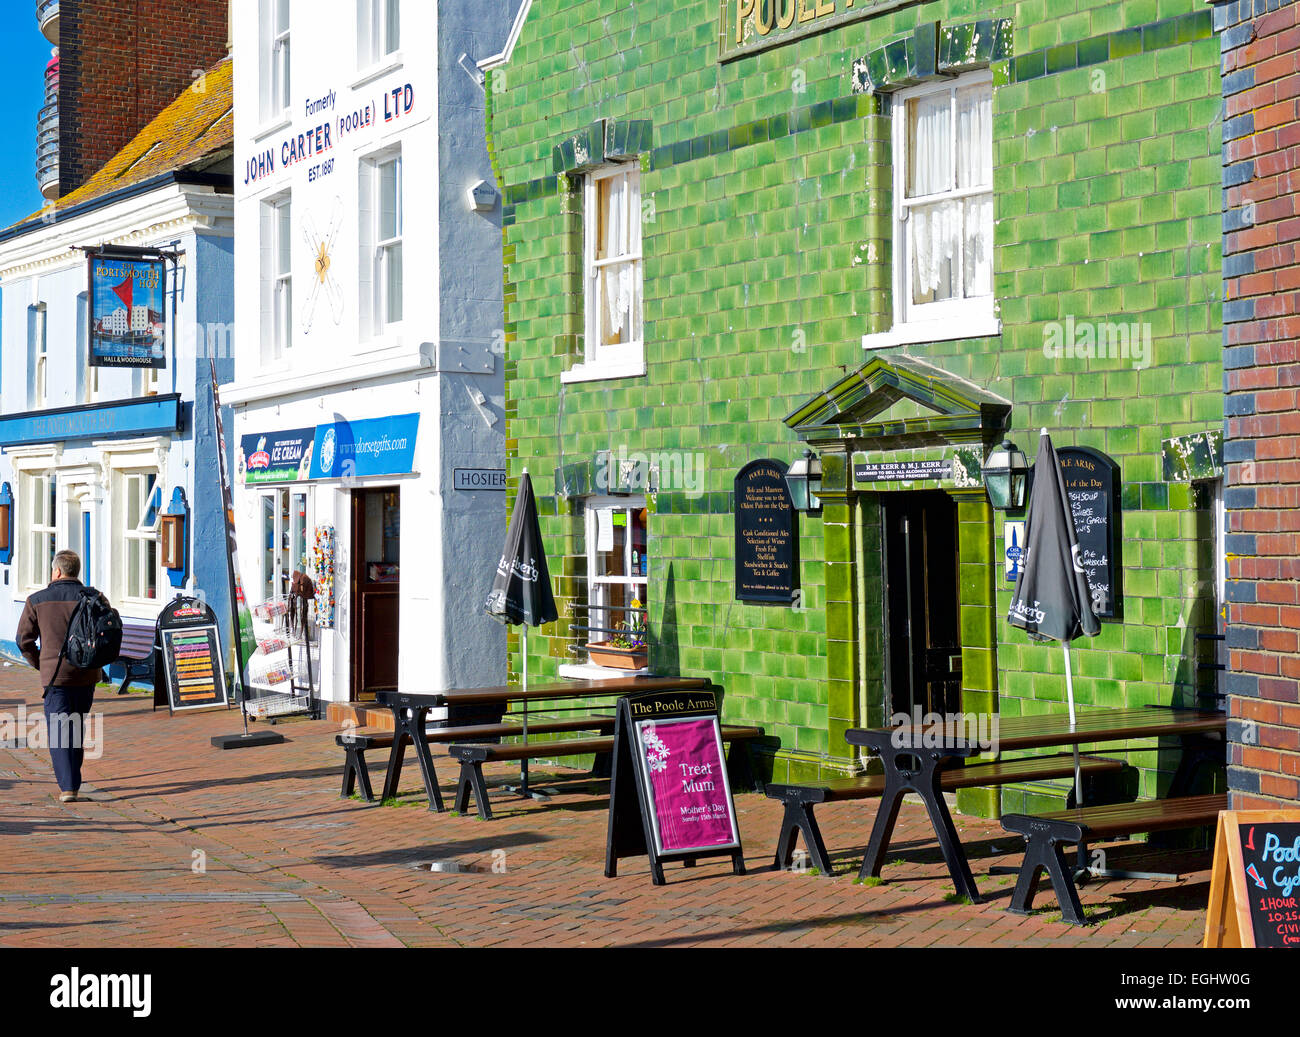 Quayside pubs in Poole, Dorset, England UK - Stock Image